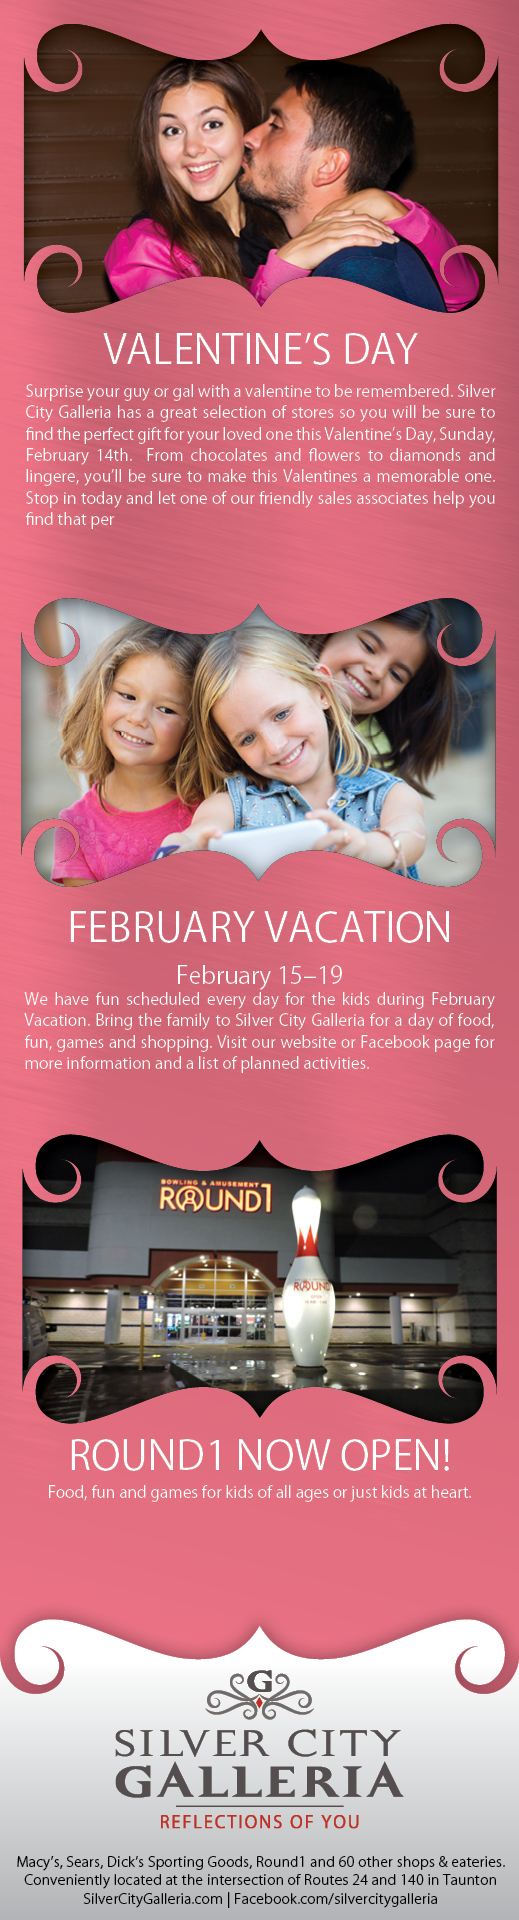 Valentine 1/2 Page Ad Design for Silver City Galleria by Cybergraph®